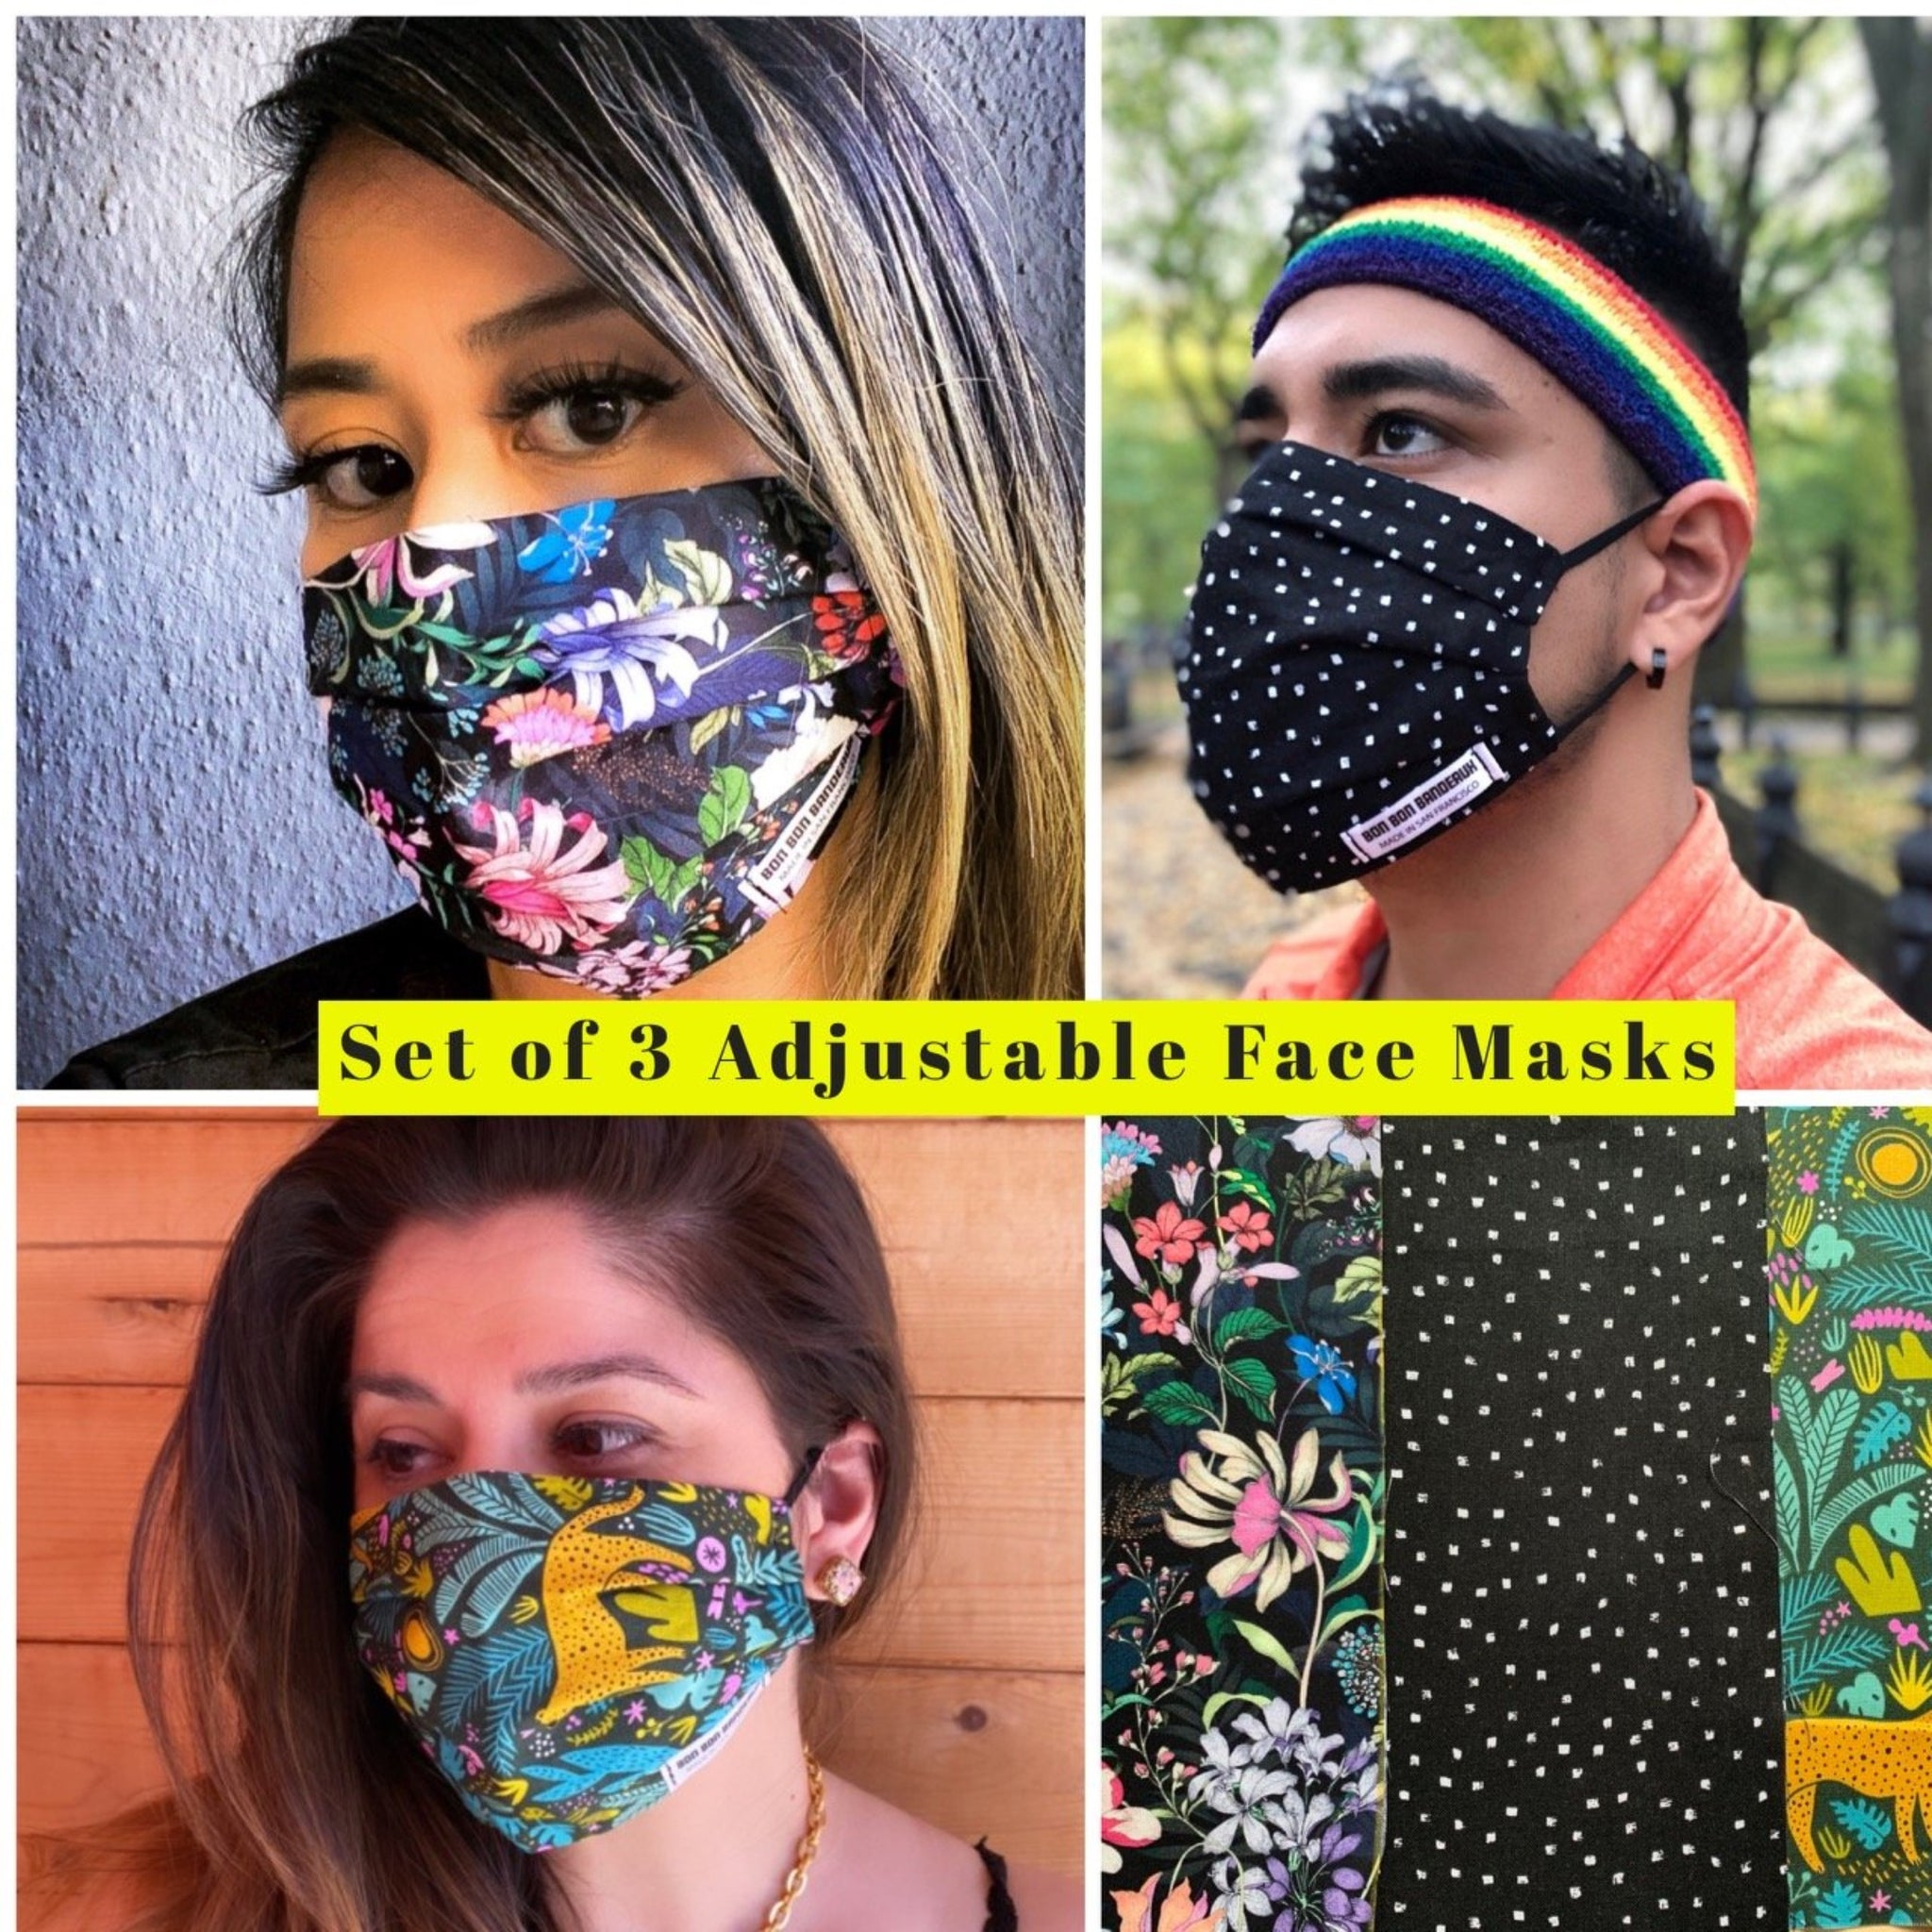 Set of 3 Adjustable Size Face Masks (Pepper/Botanical/Rainforest)